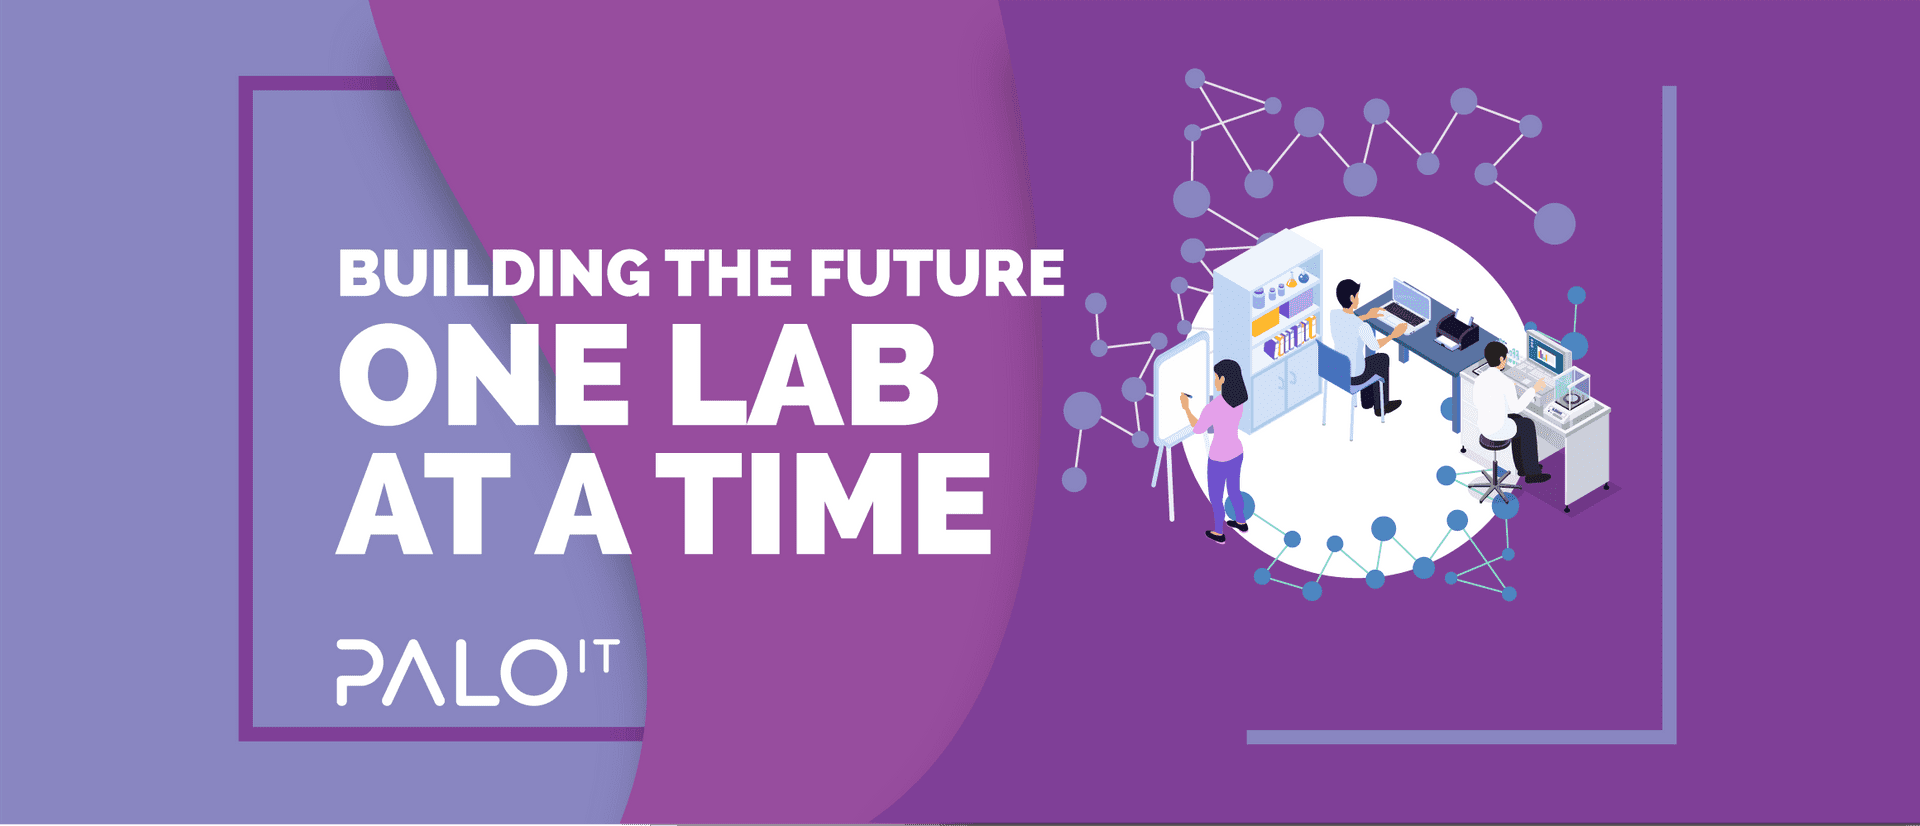 Building the Future, One Lab at a Time